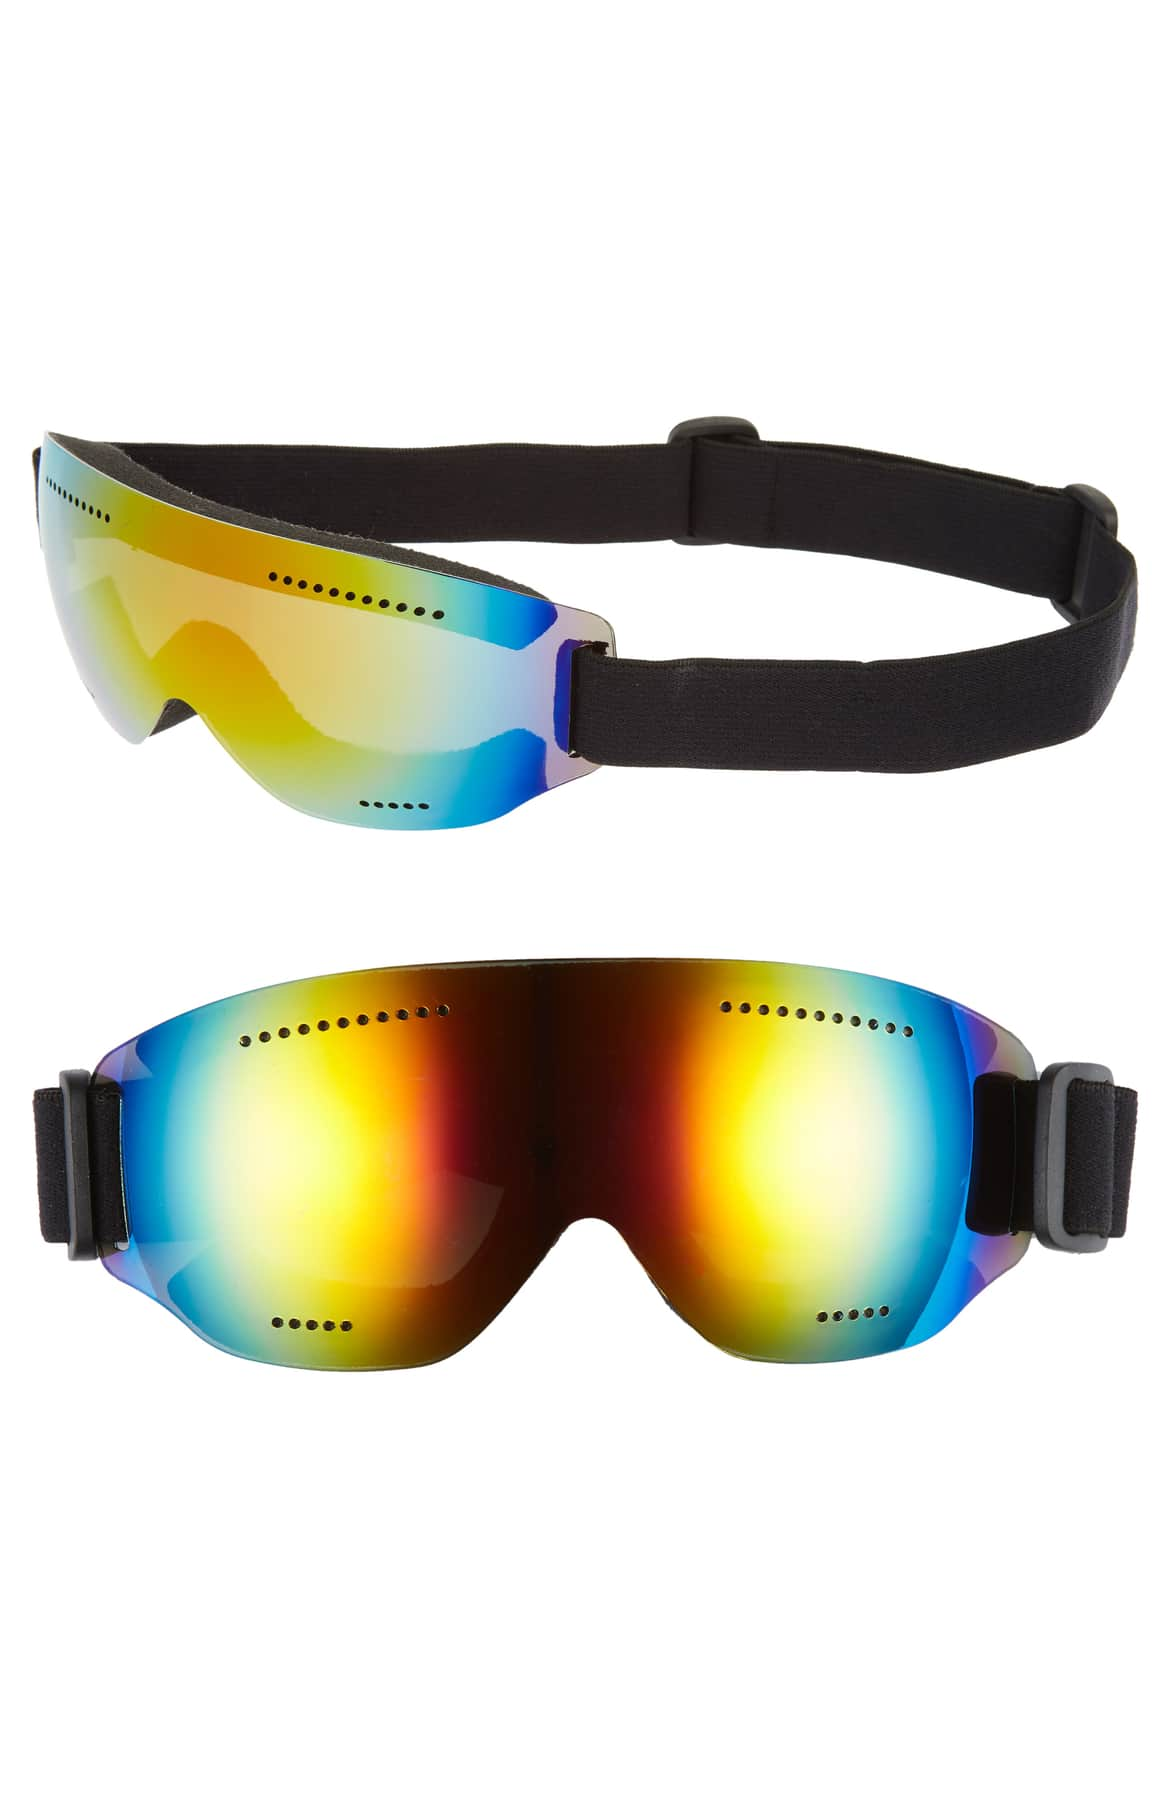 You'll look like a snow pro in sleek goggles designed with an eye-catching tint. $14.40 (Image: Nordstrom){ }